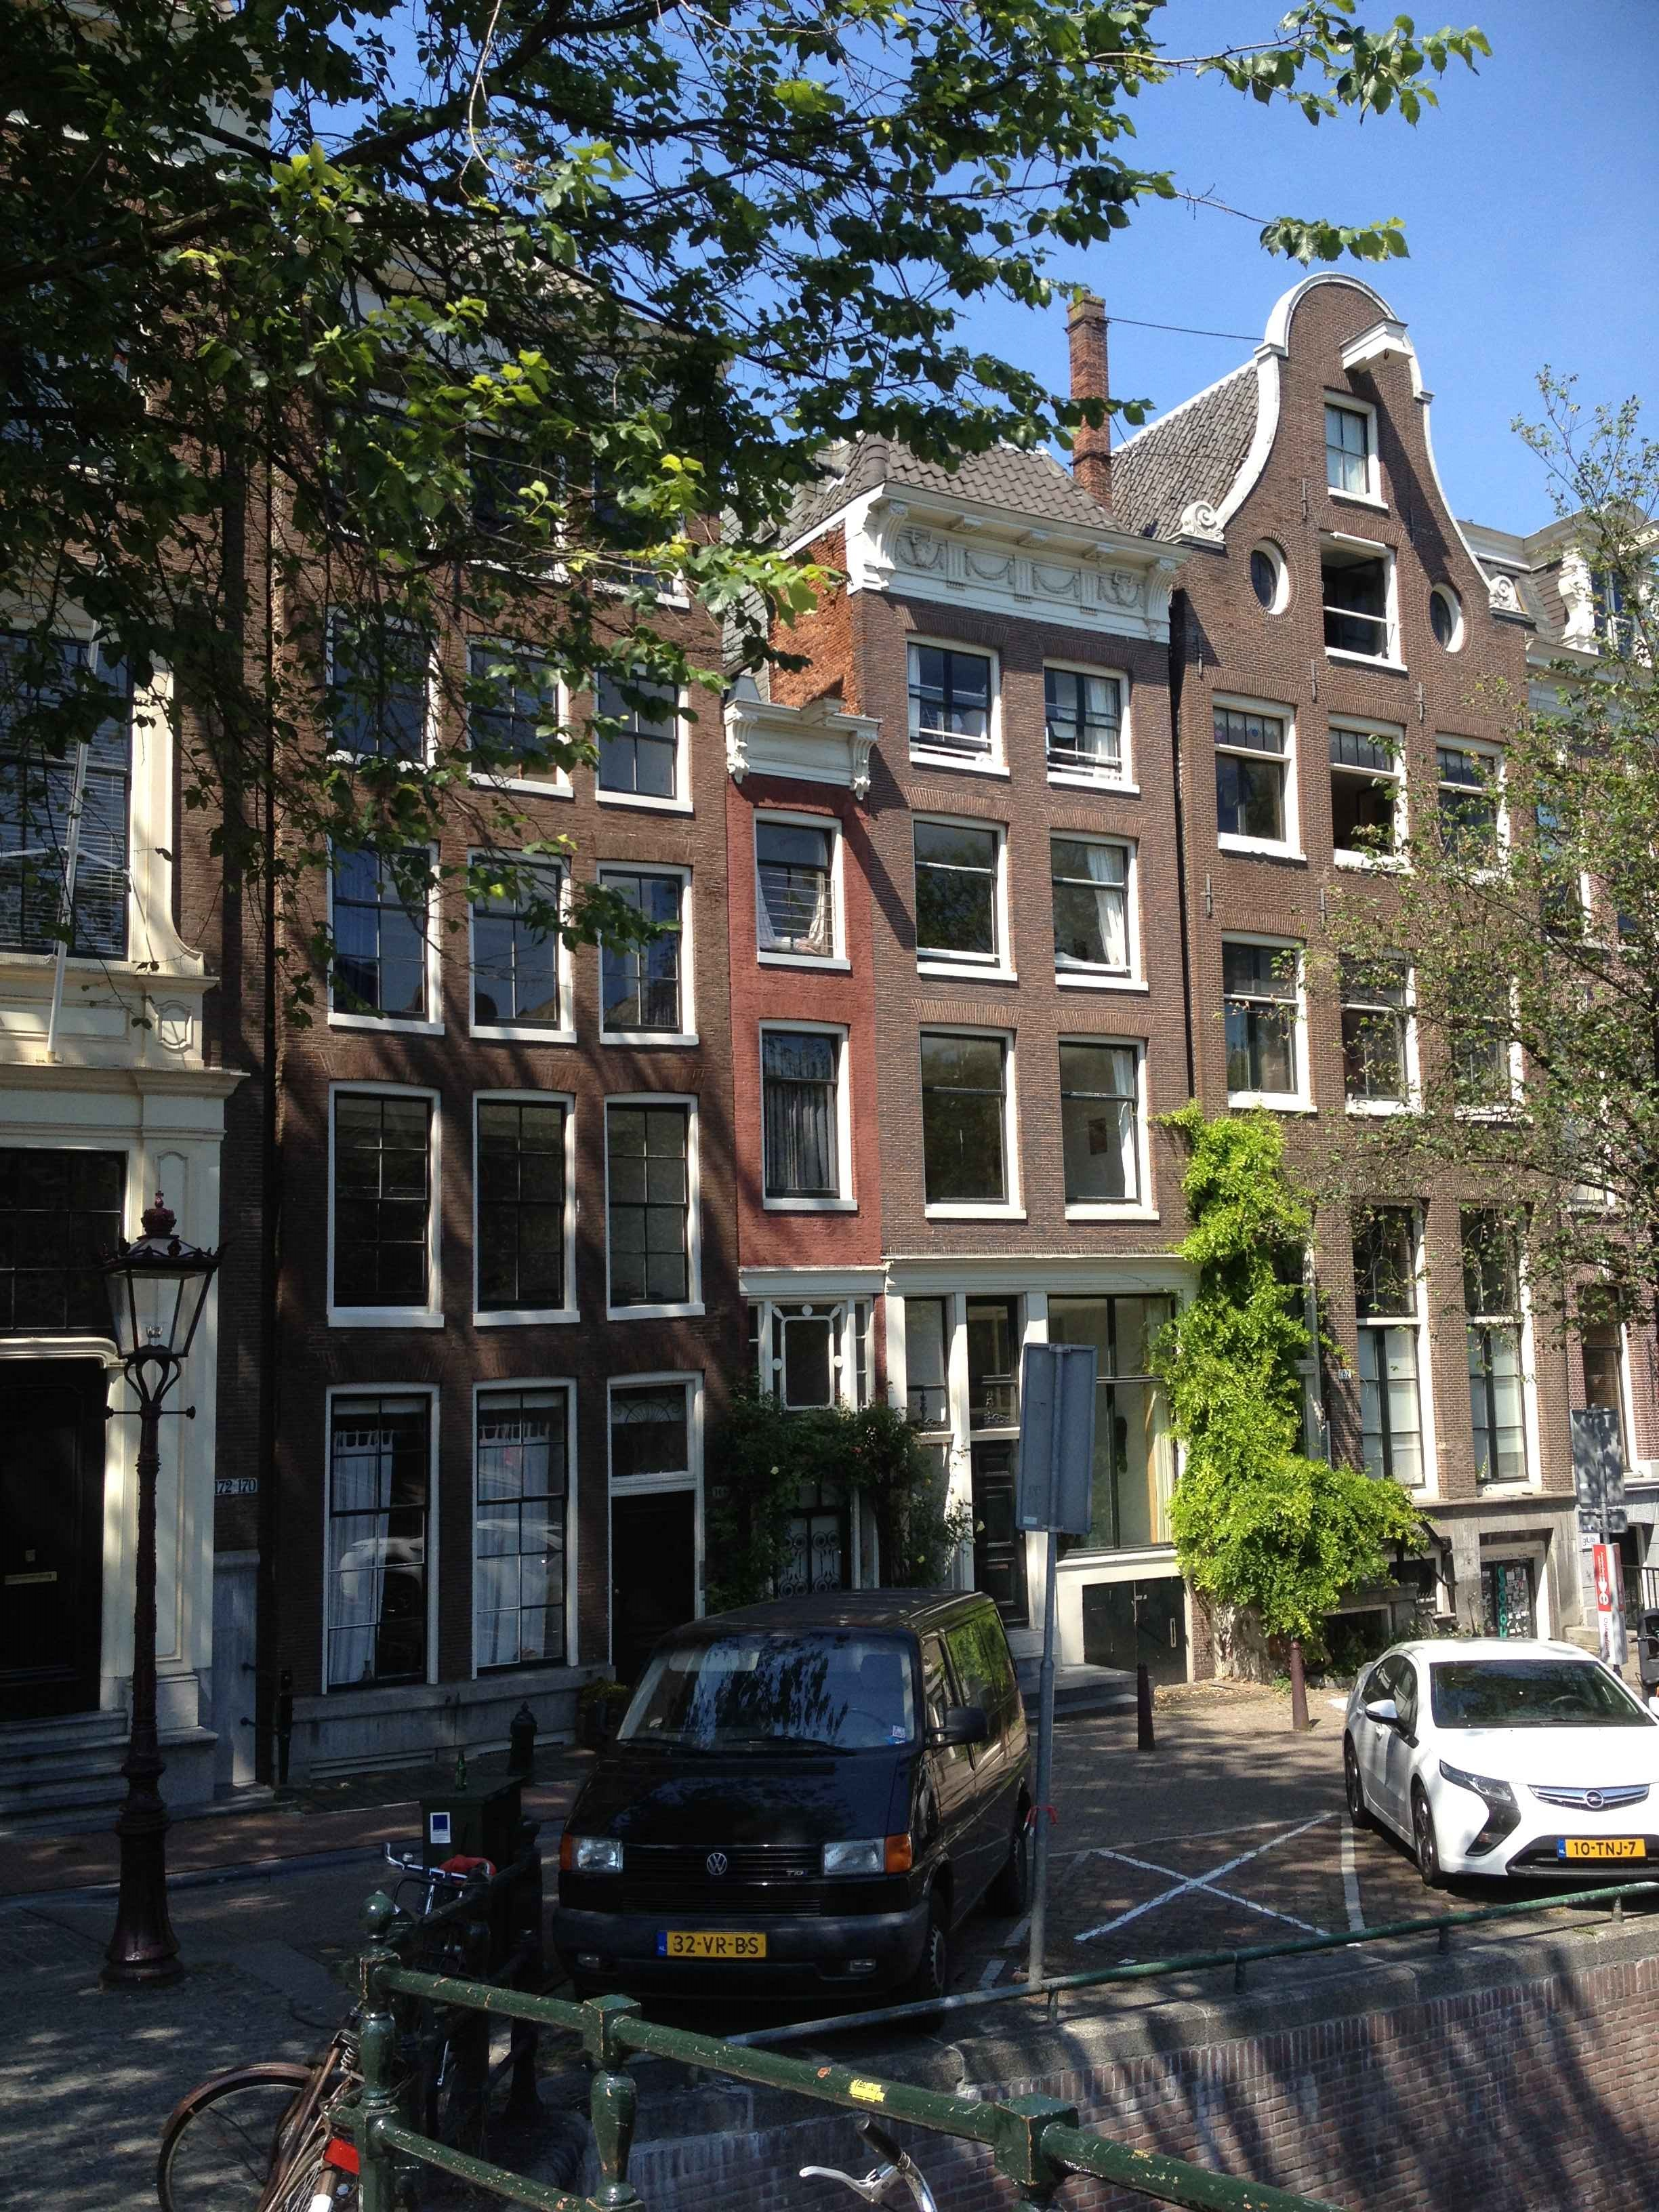 Amsterdam Narrow house